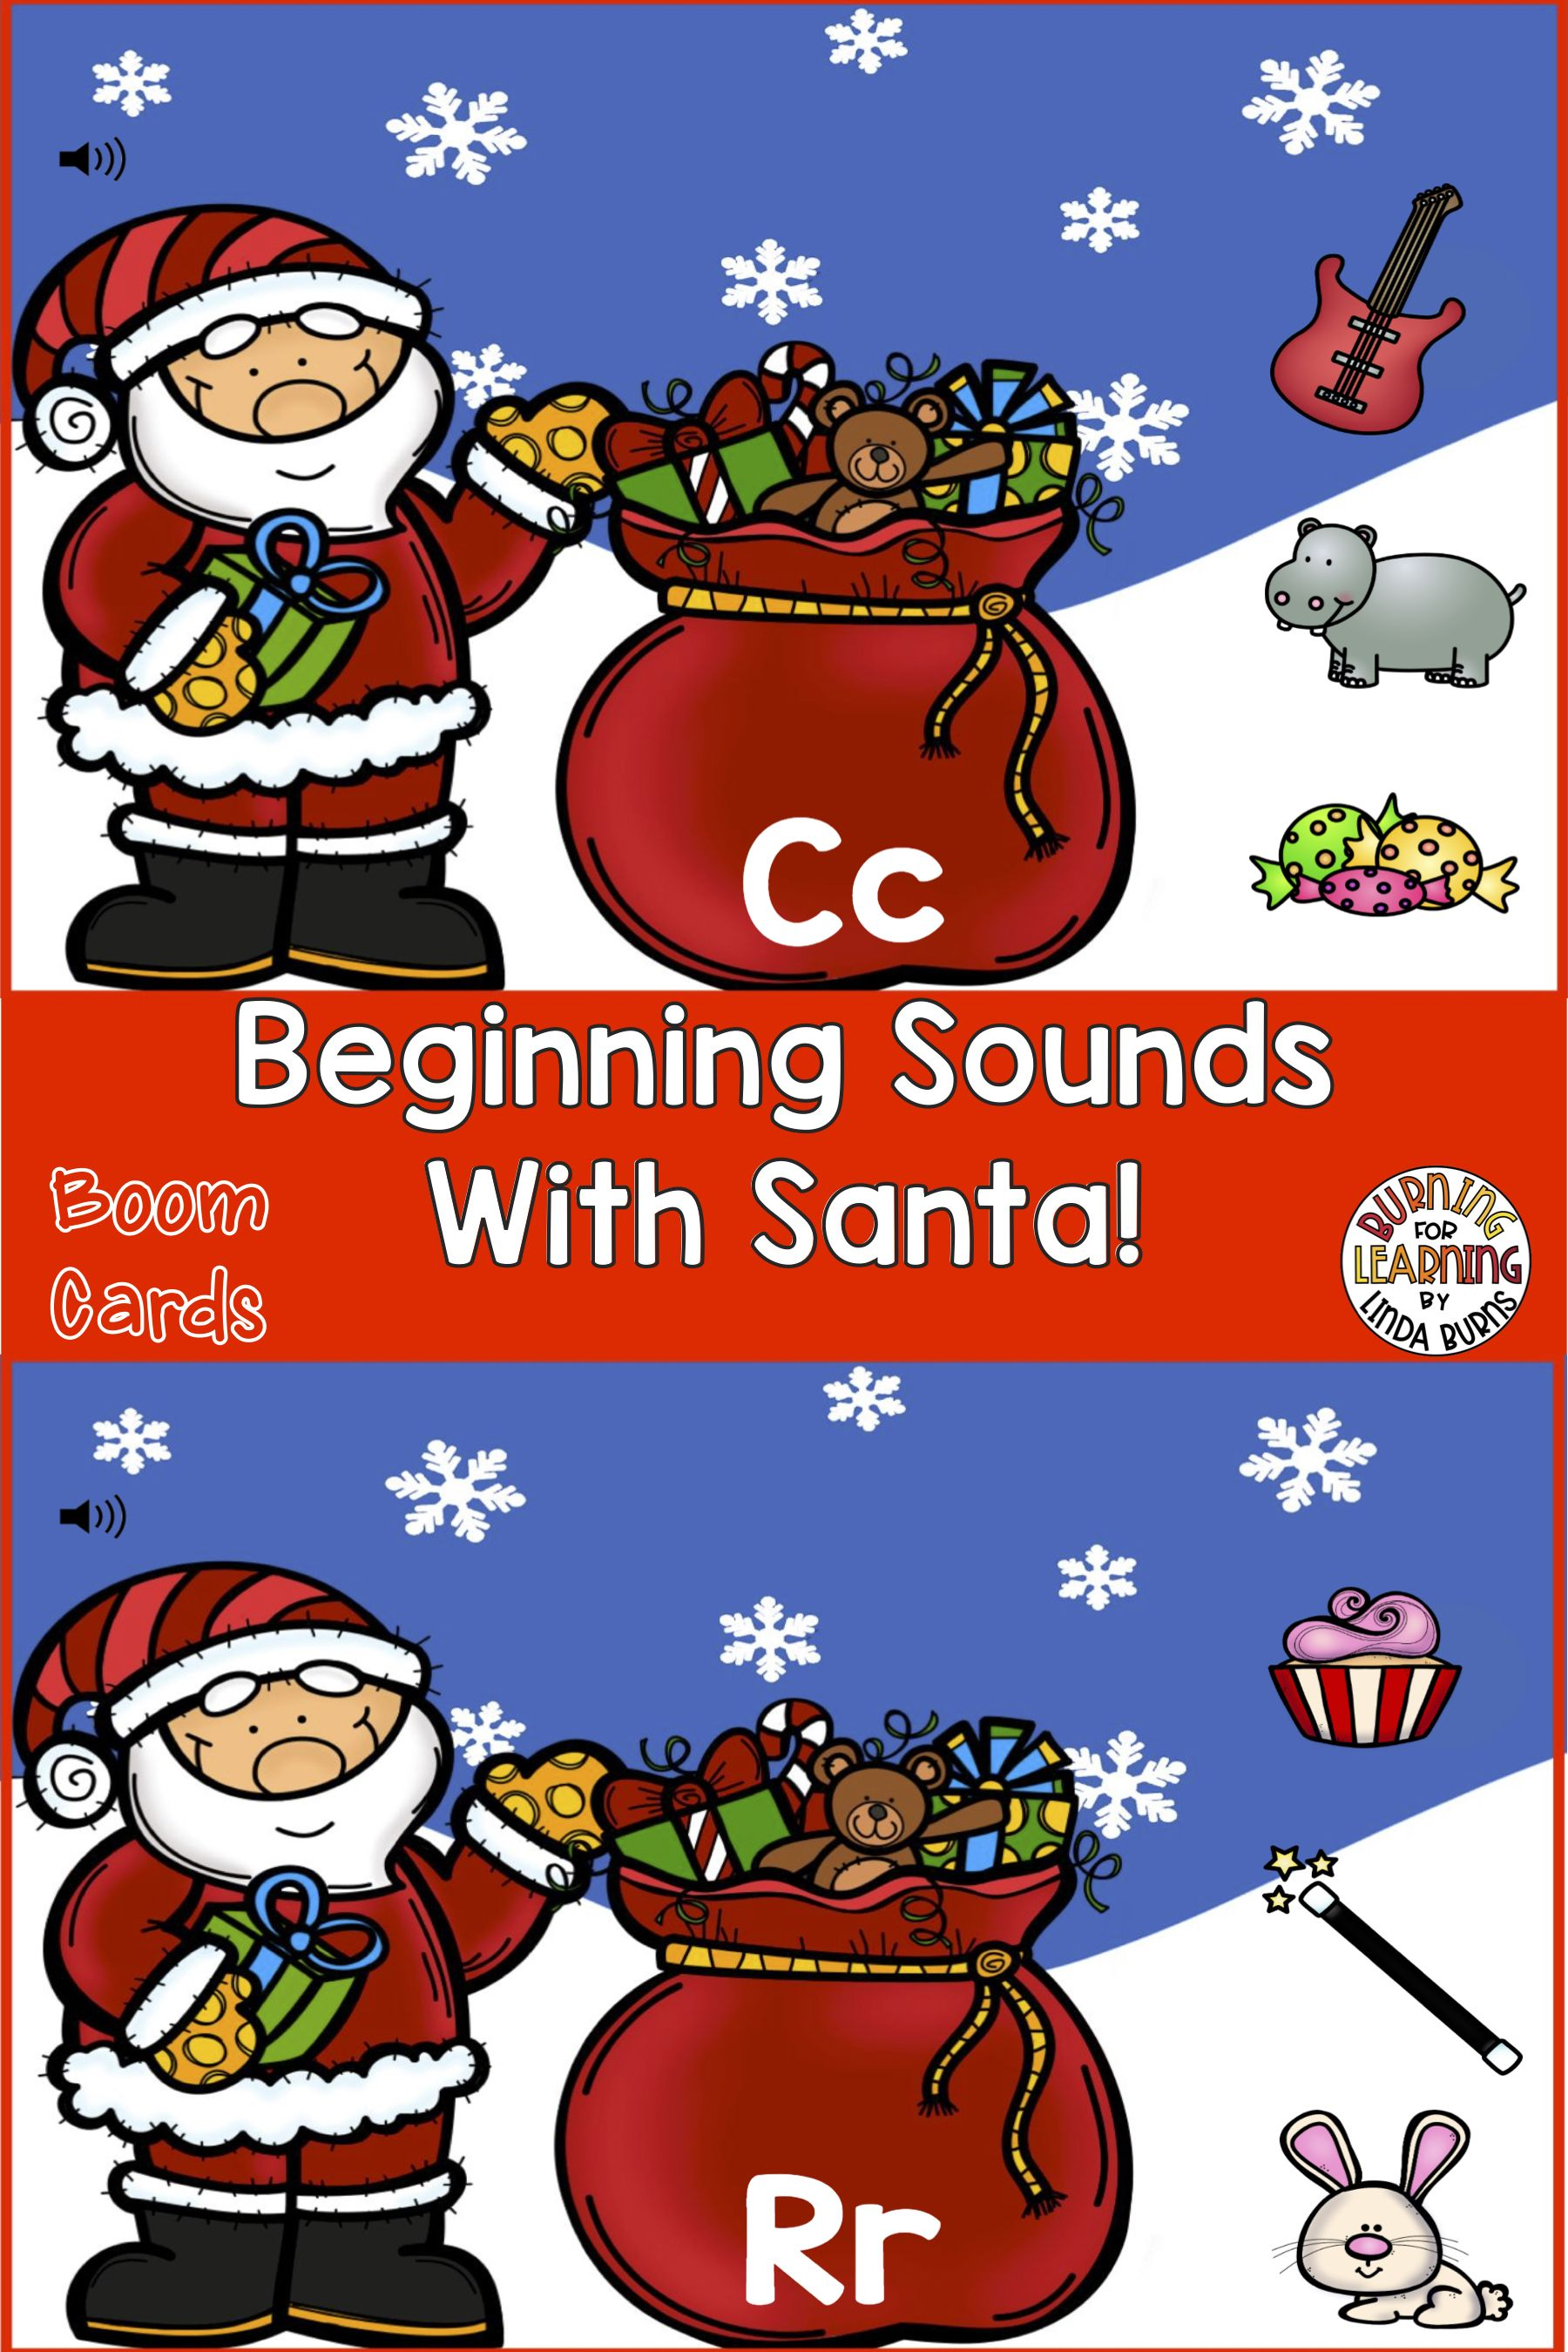 Beginning Sounds With Santa